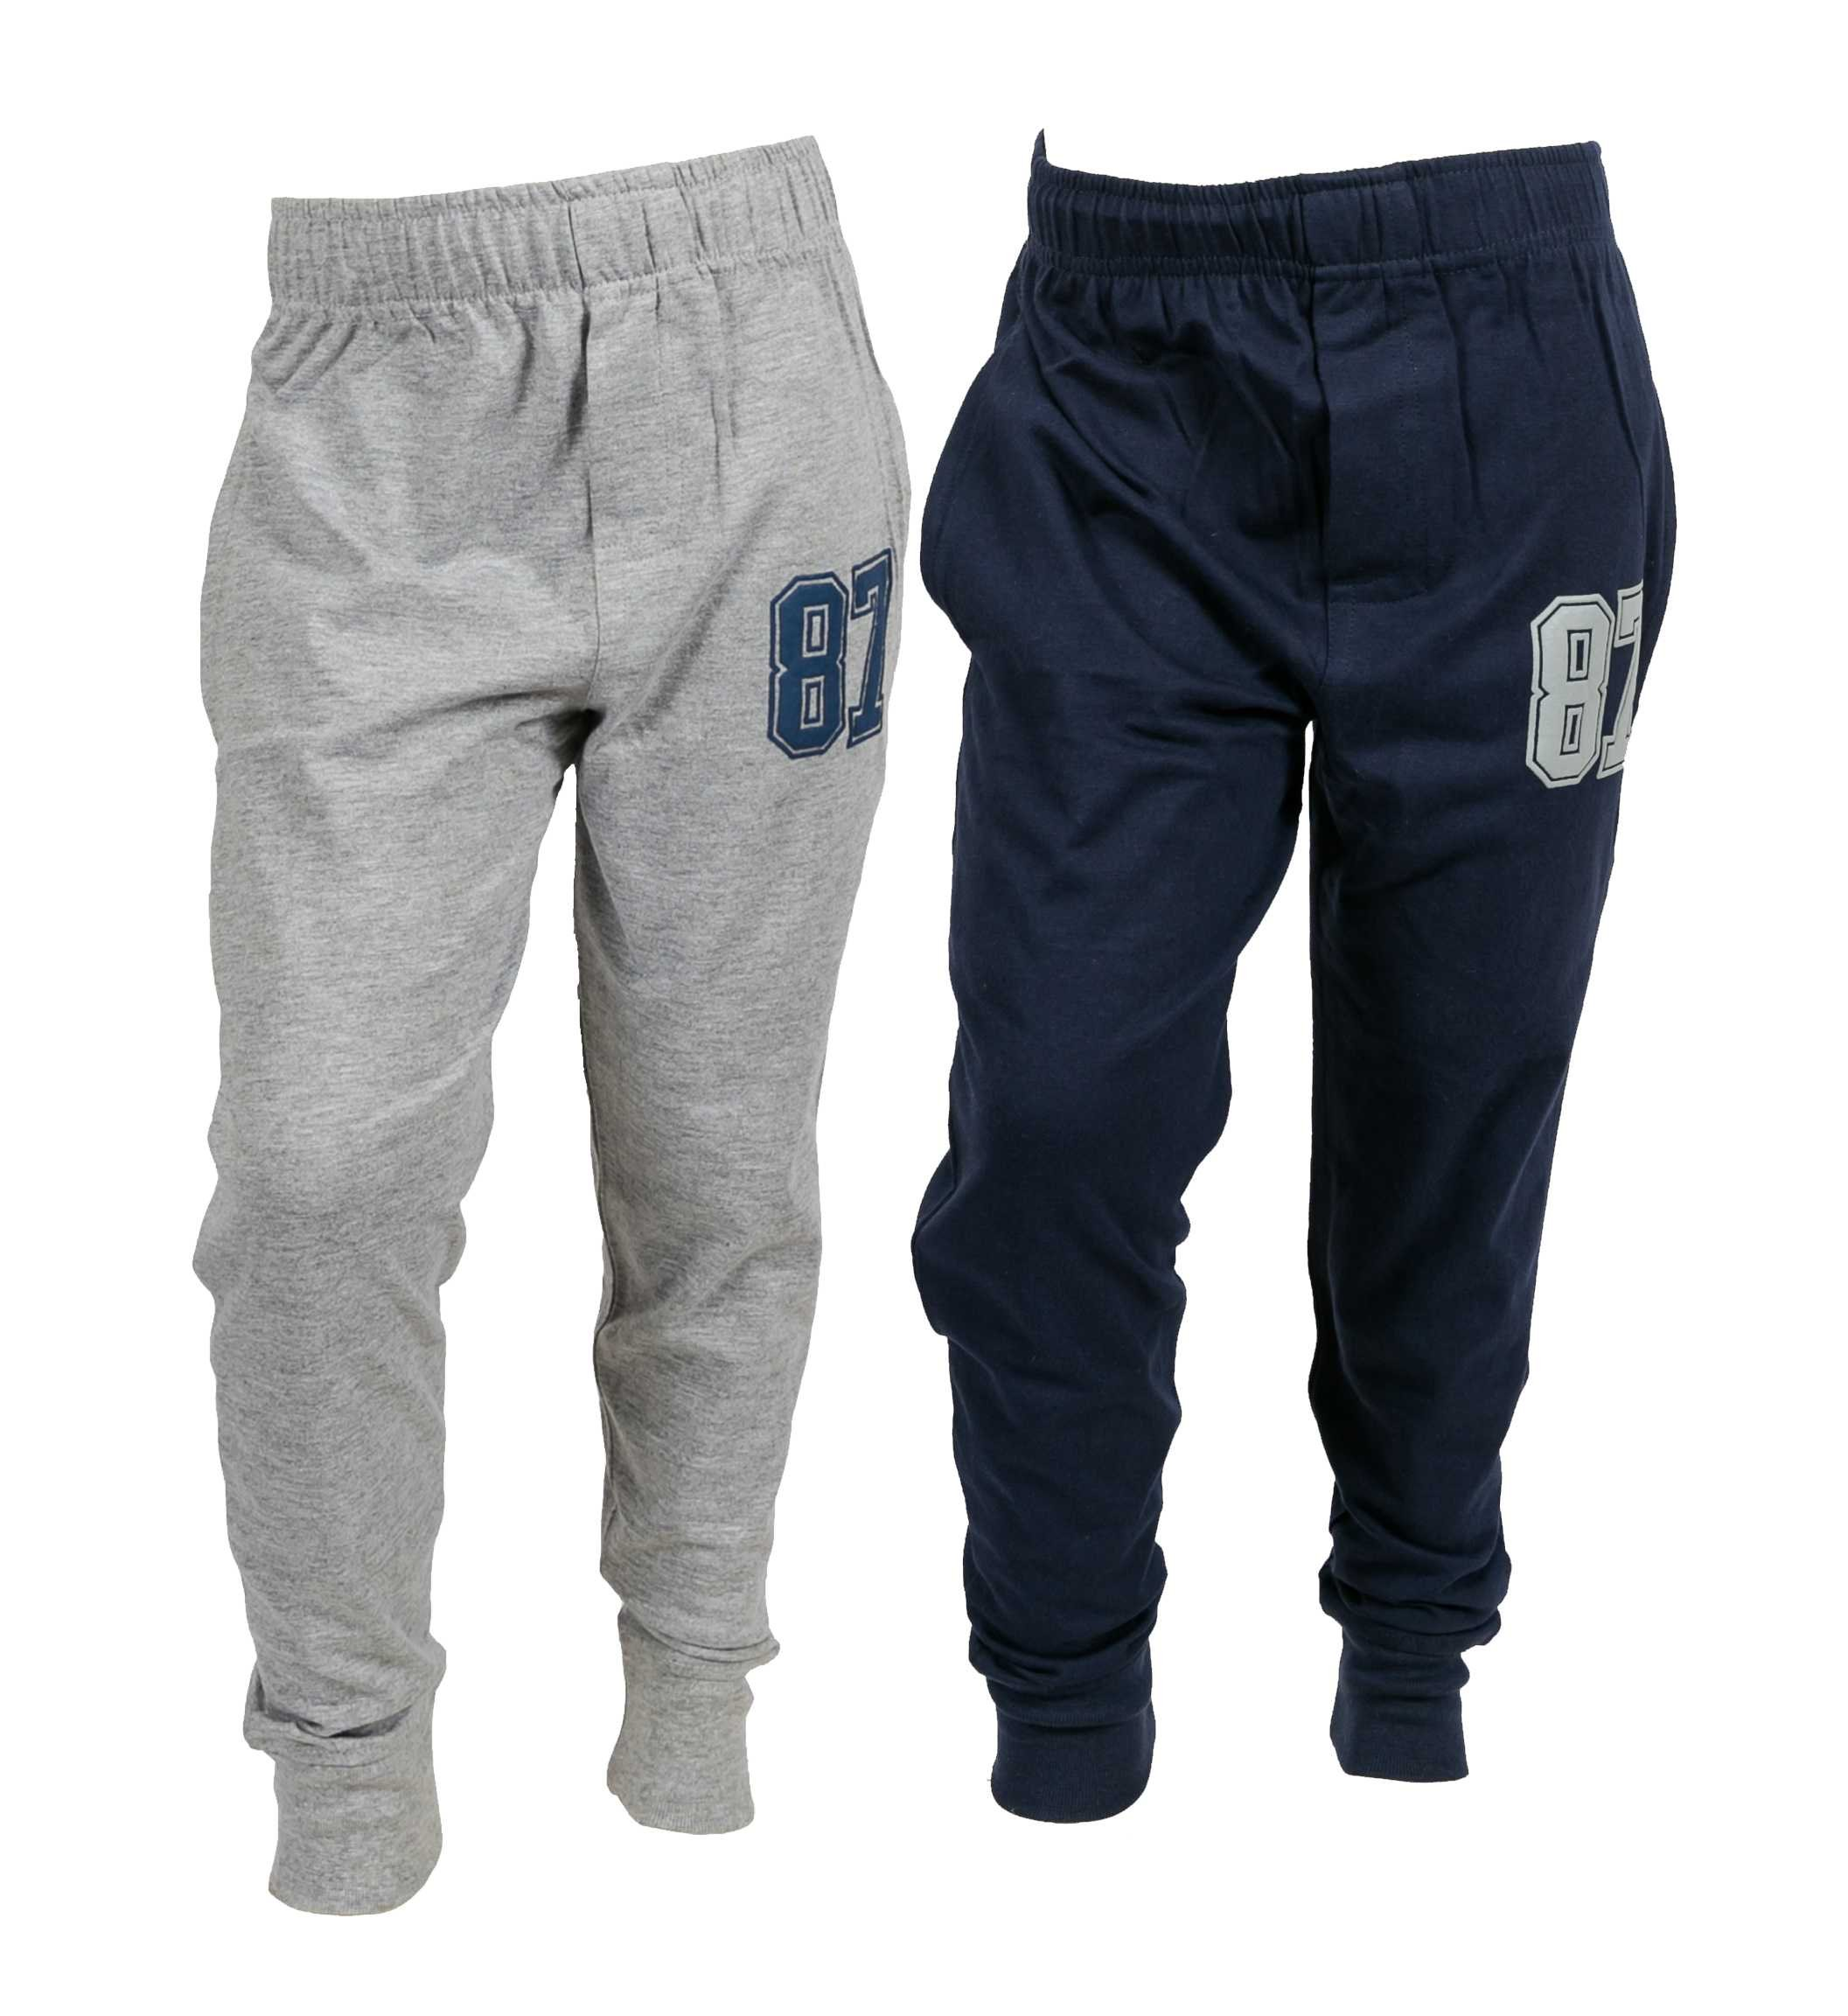 chopper club Pack of 2 Track Pant for Boys 7-8 Years Smart Set of 2 Joggers Navy+Grey US8